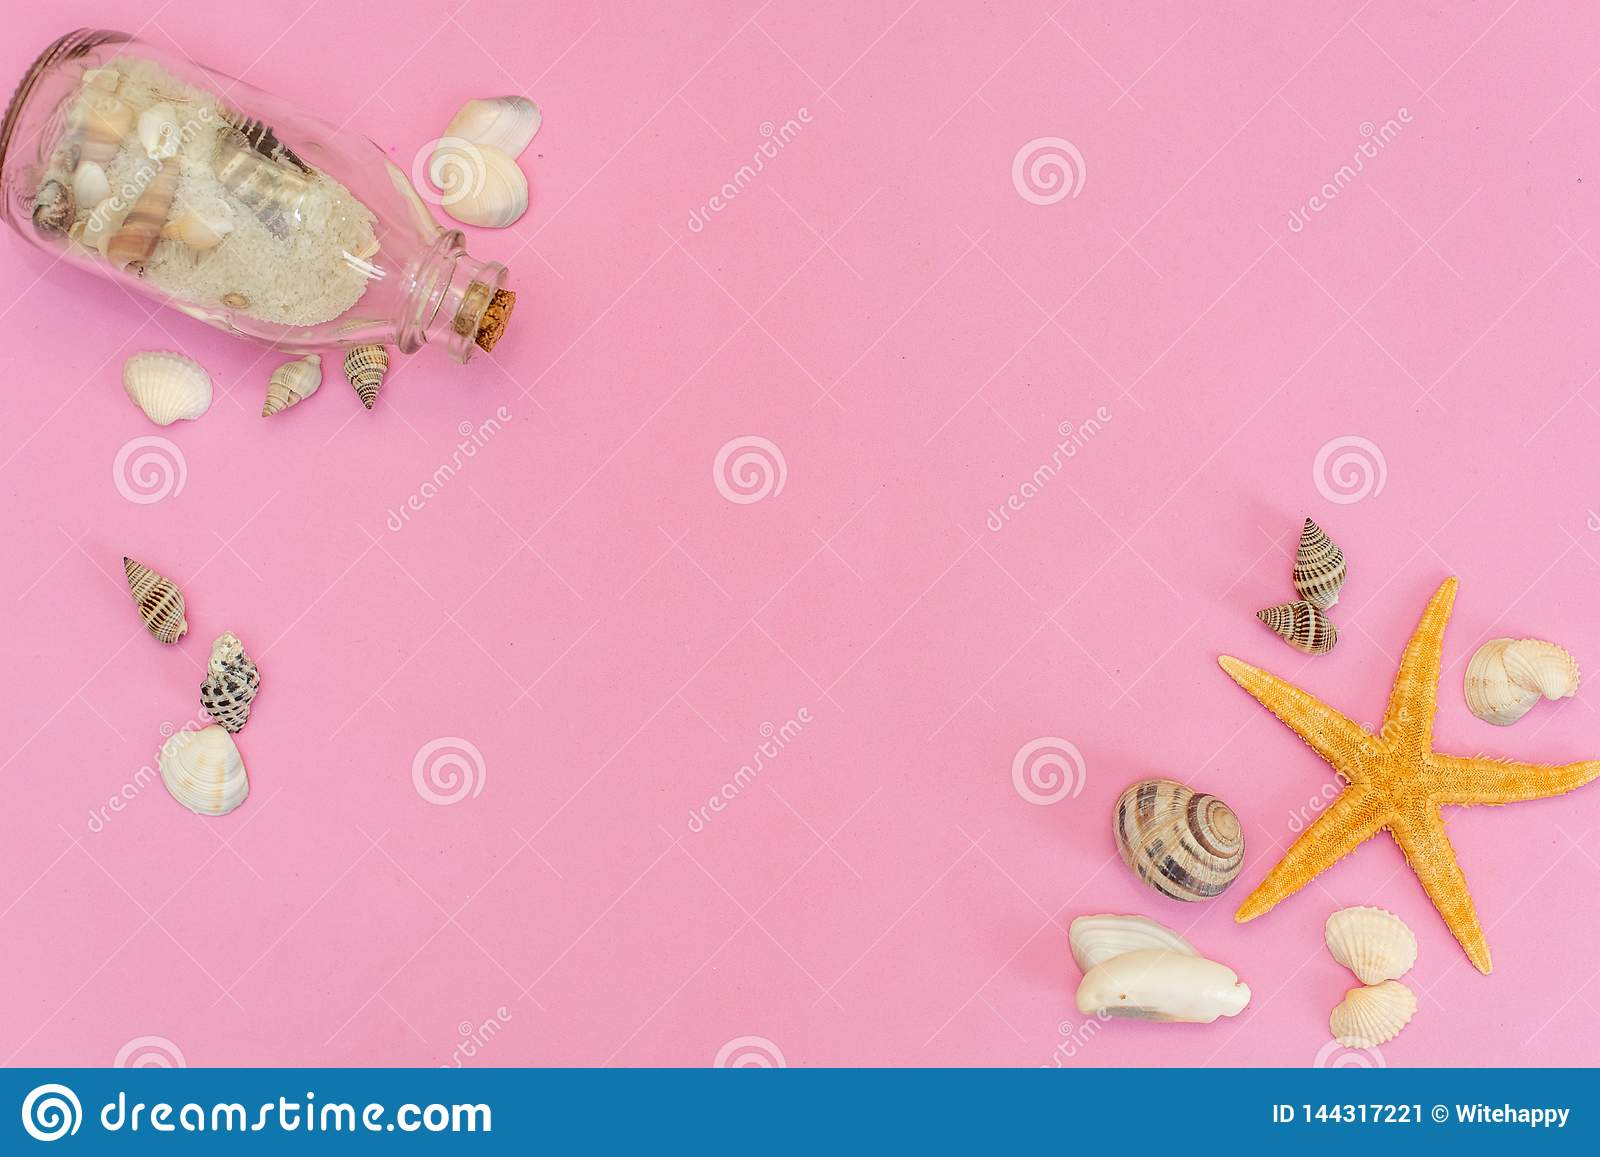 Starfish and seashells on pink background